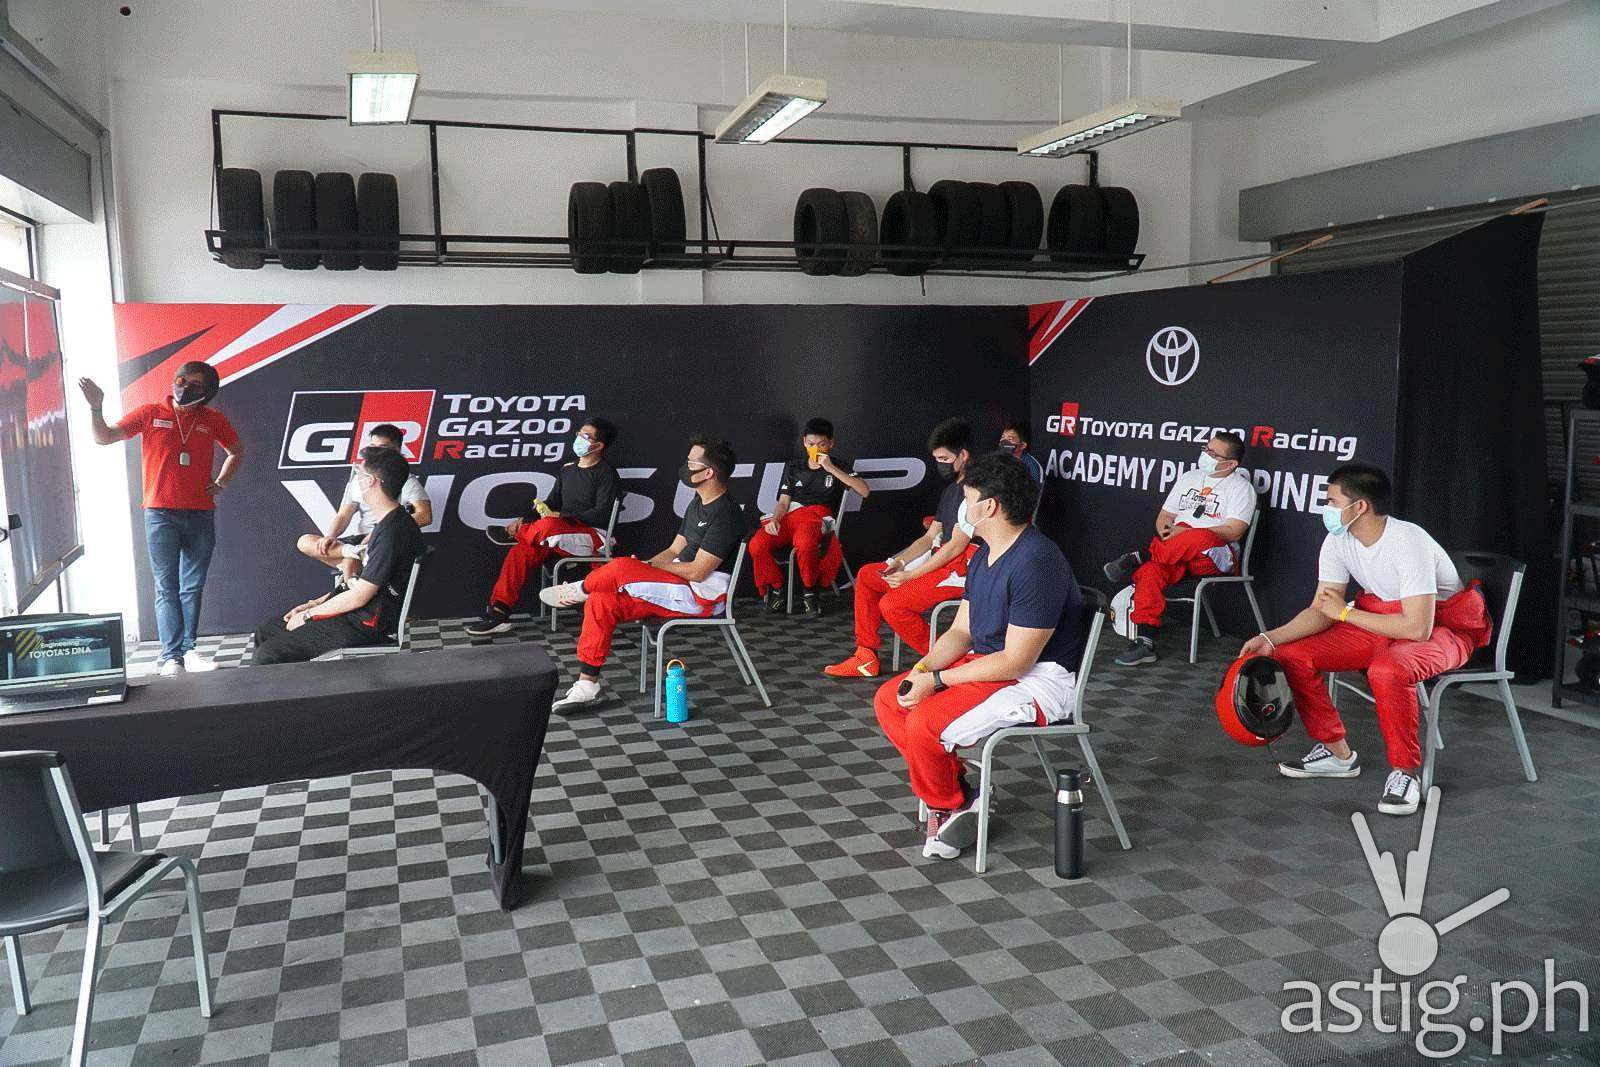 The TOYOTA GAZOO Racing Academy teaches the country's aspiring racers and future professionals basic and advanced skills